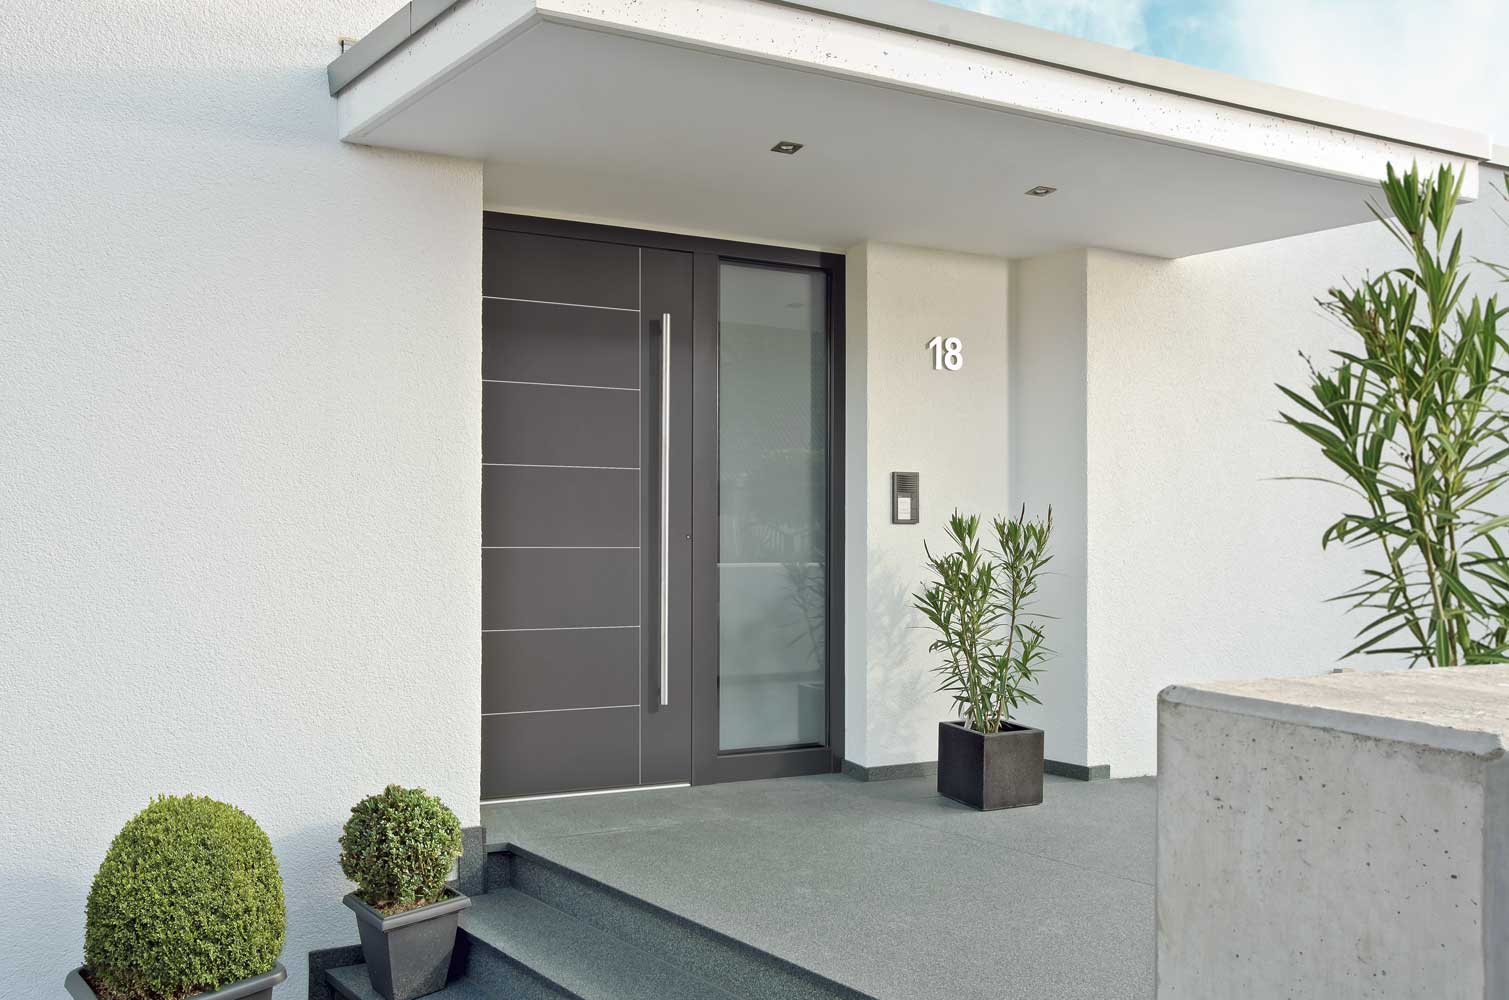 Metris Schuco residential entry door